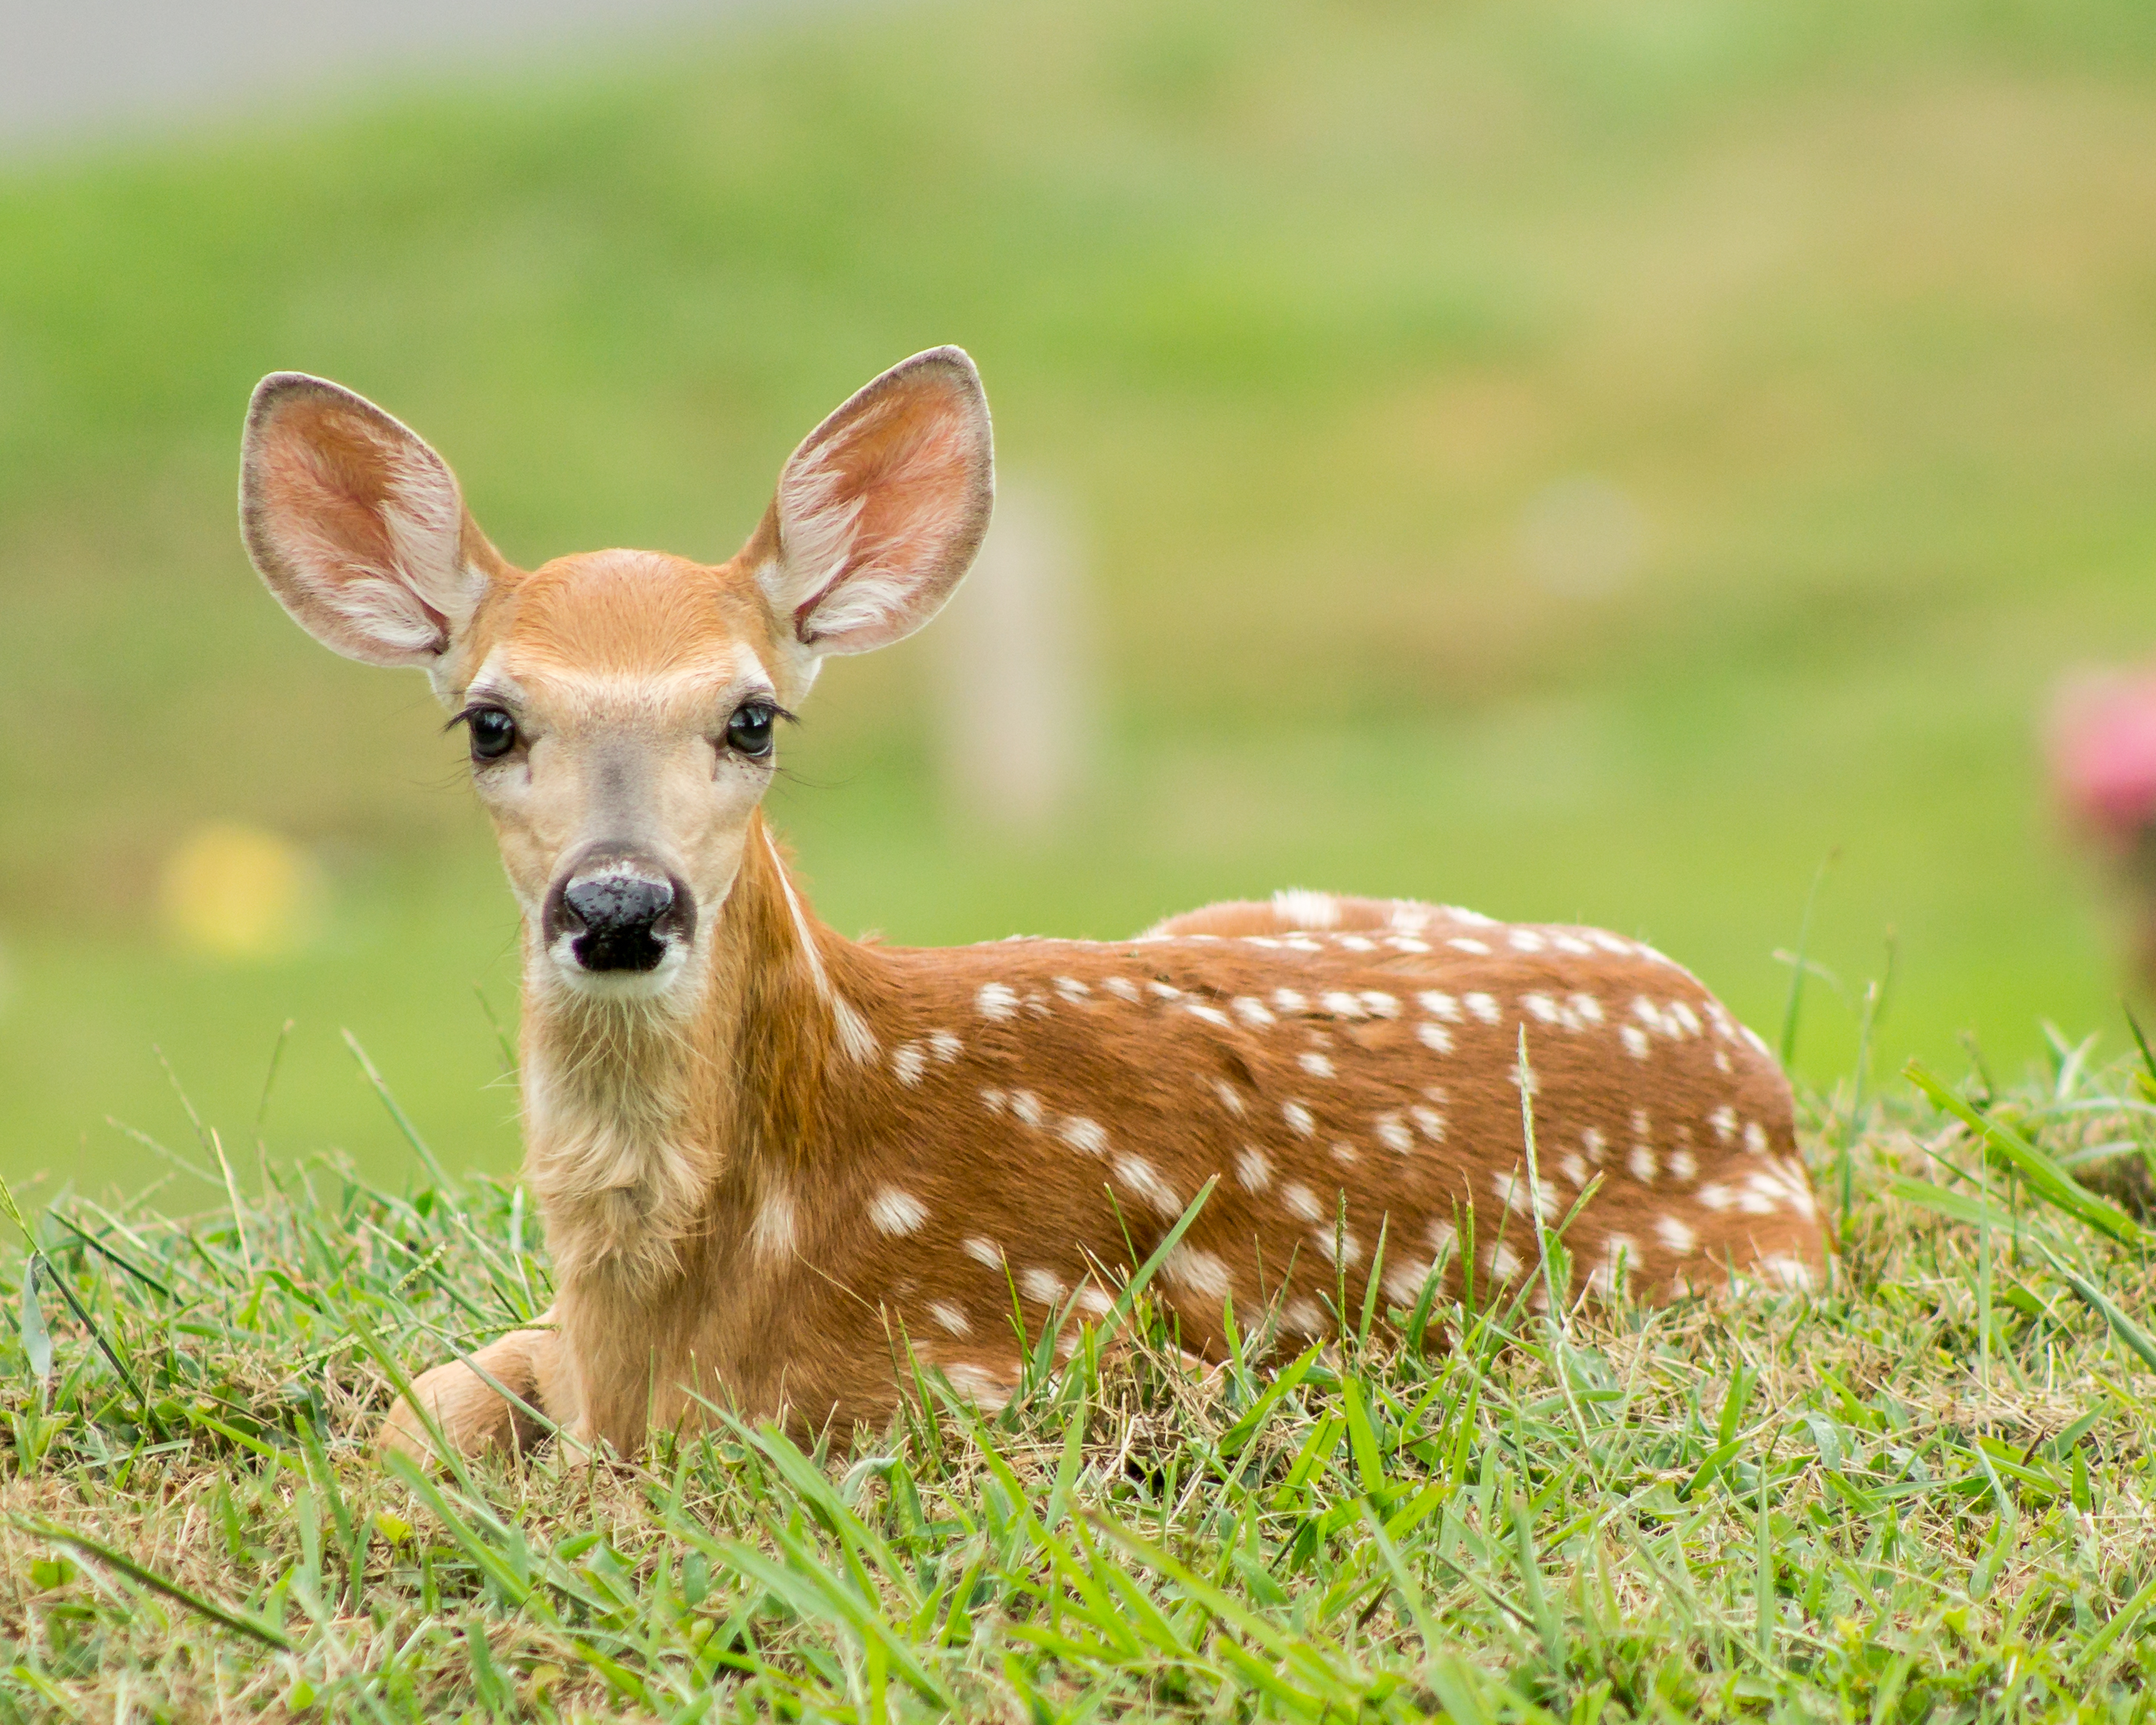 A baby deer let me get up close and personal today - Imgur